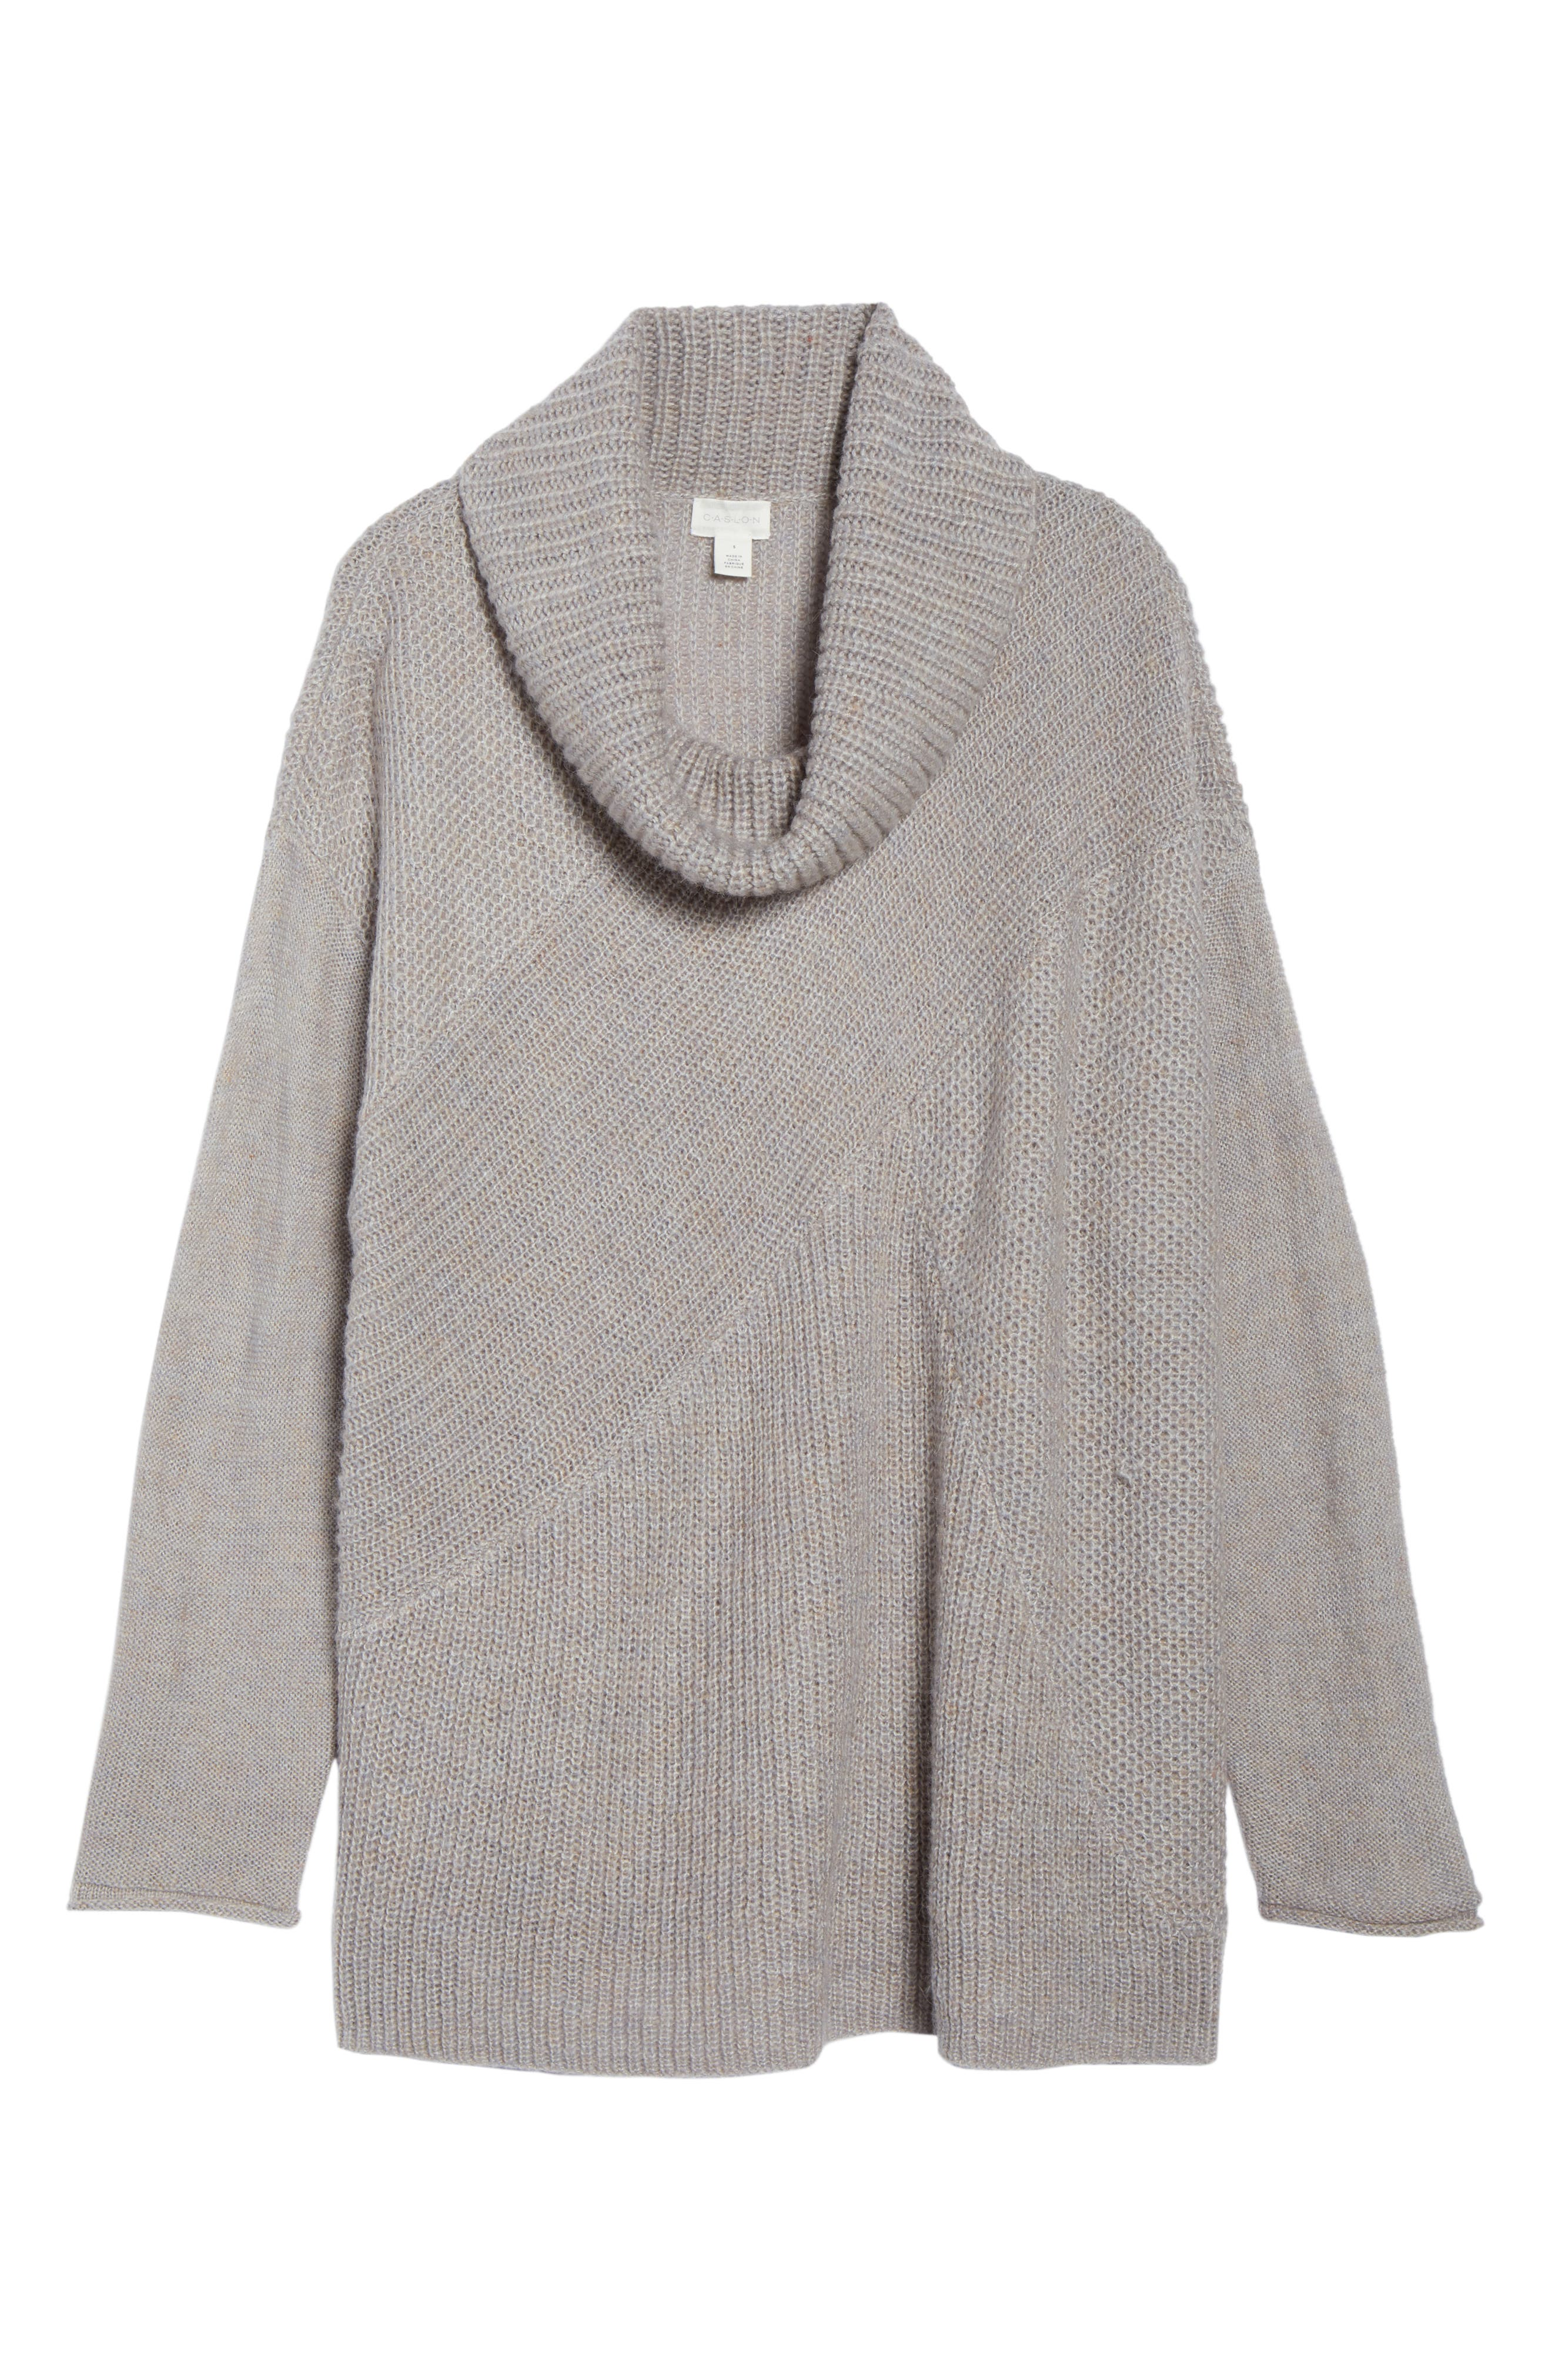 Mix Stitch Wool Blend Funnel Neck Sweater,                             Alternate thumbnail 6, color,                             GREY HEATHER